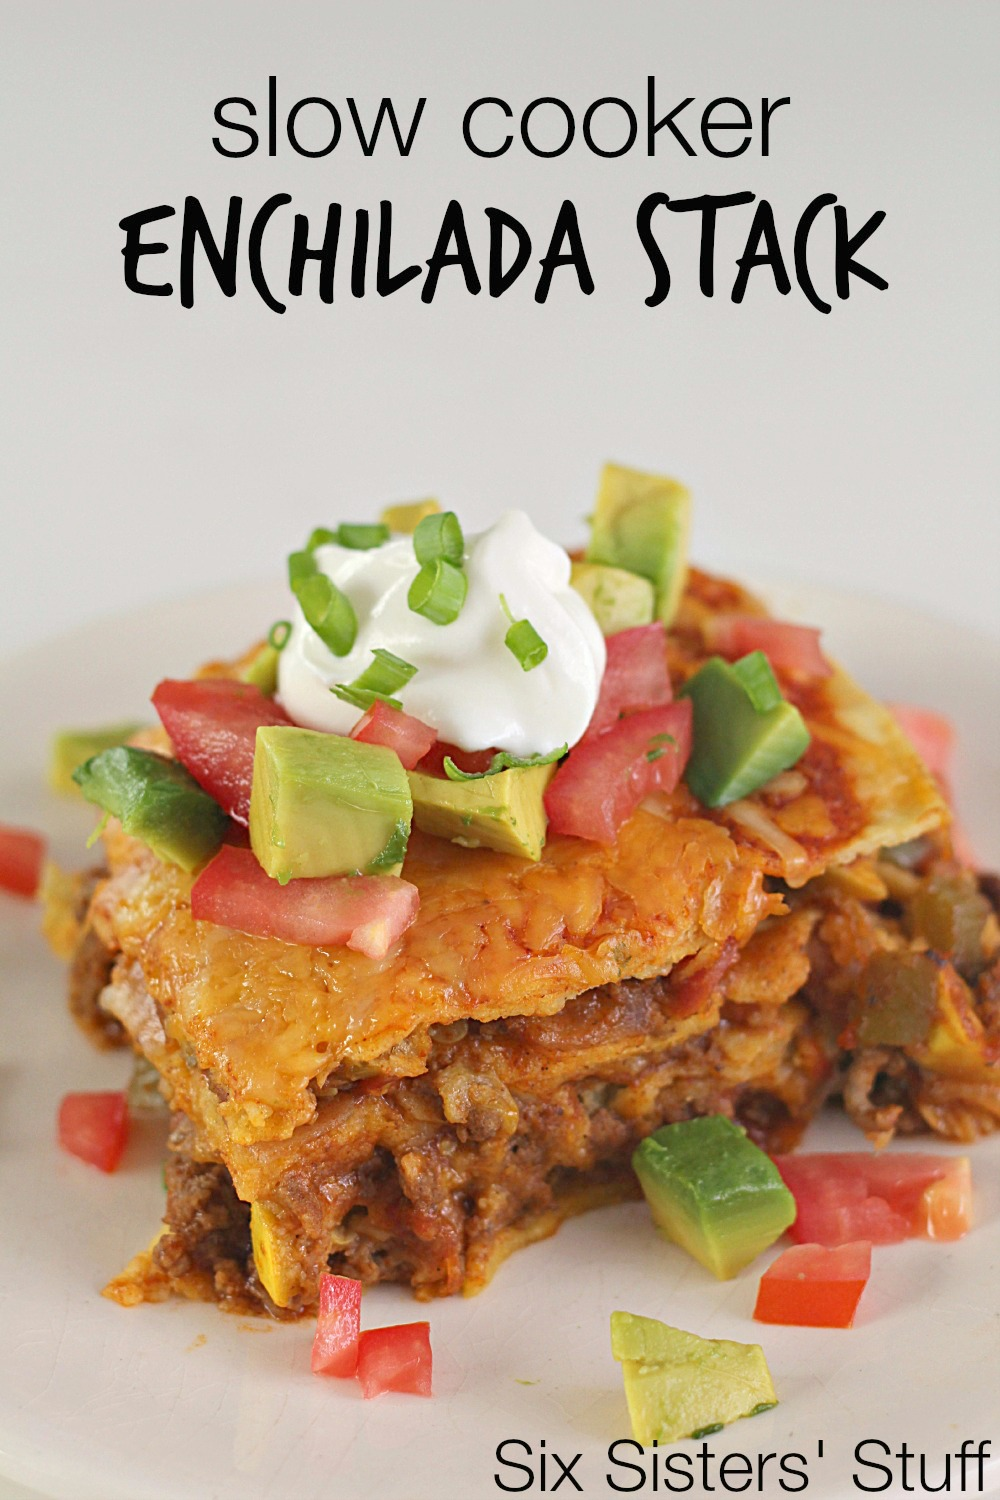 Slow Cooker Enchilada Stack Recipe SixSistersStuff